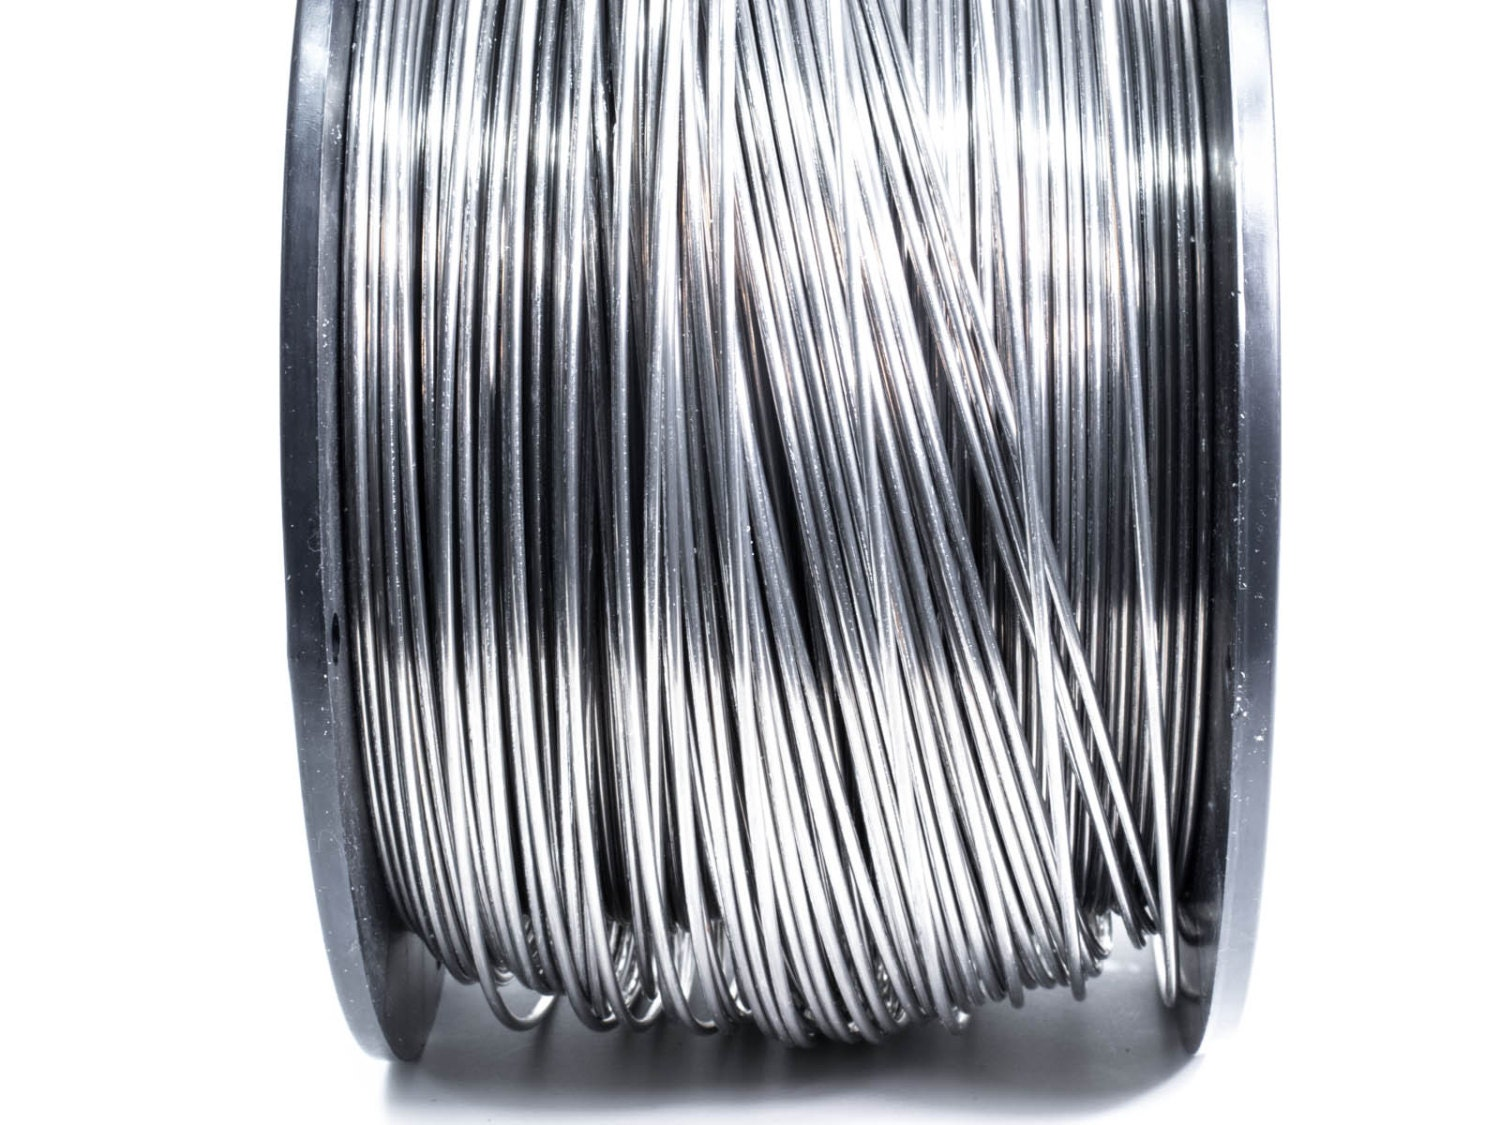 10 Feet of 14 Gauge Aluminum Wire Zinc Free Bird Toy Parts